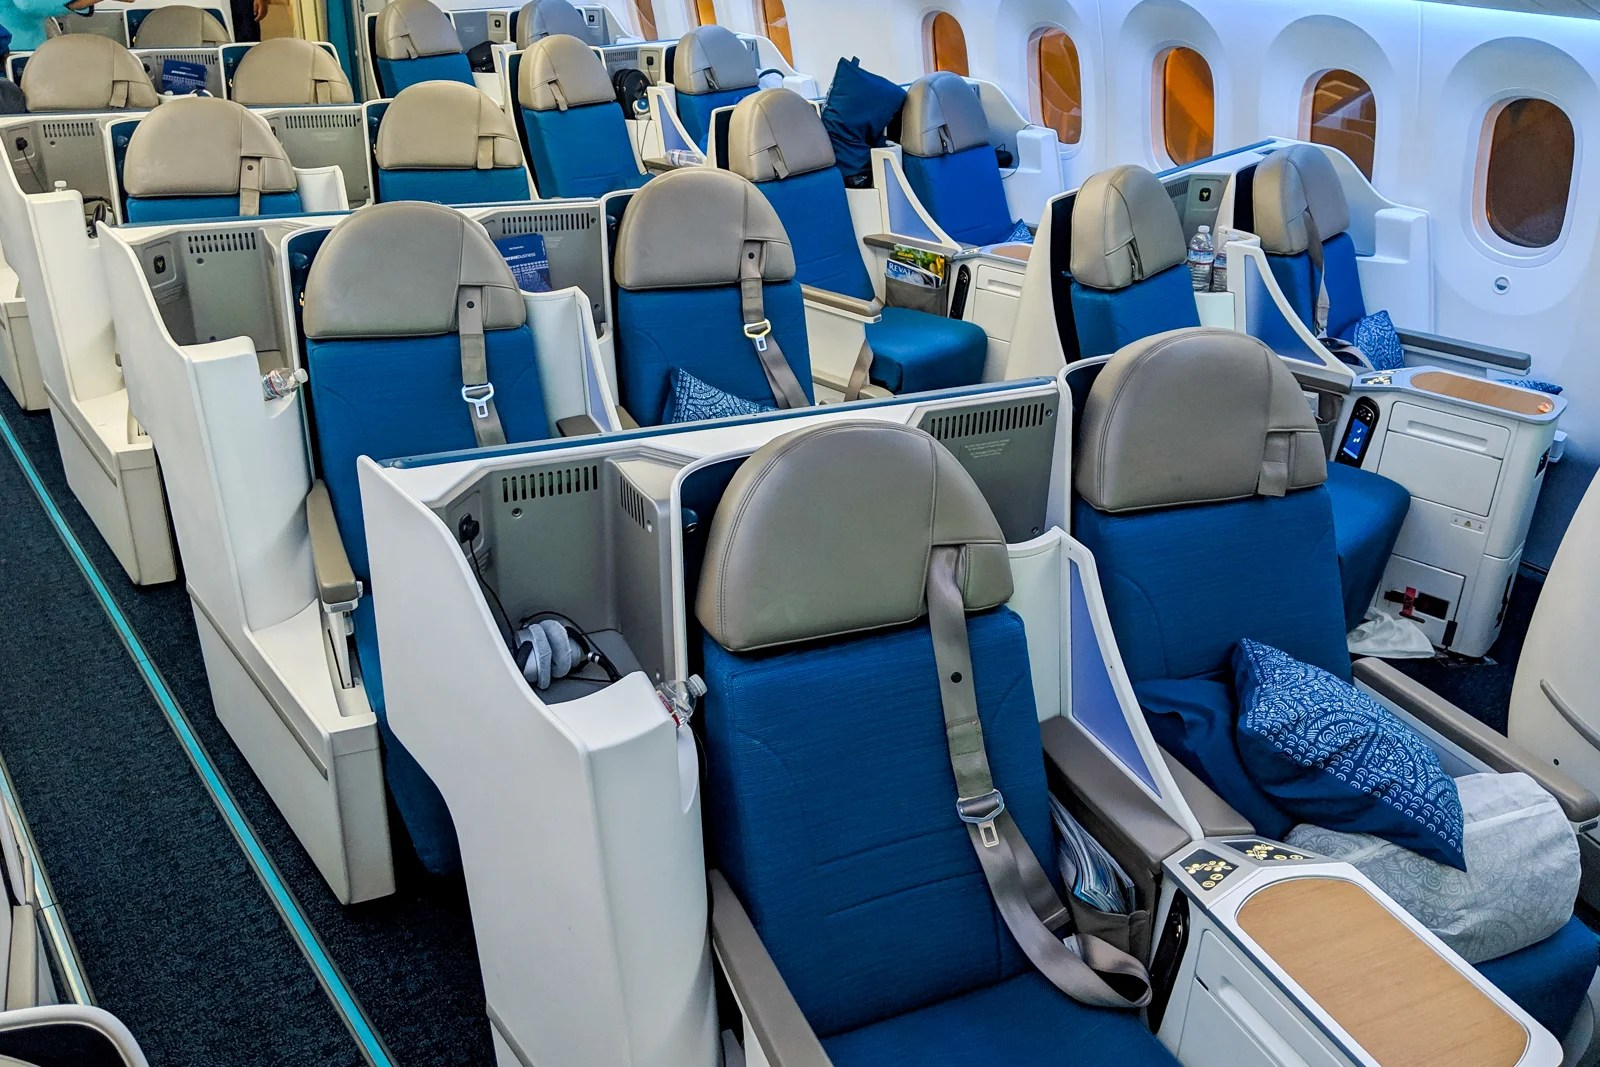 An Old New Product: Air Tahiti Nui's 787-9 in Business Class From LAX to Papeete, Tahiti